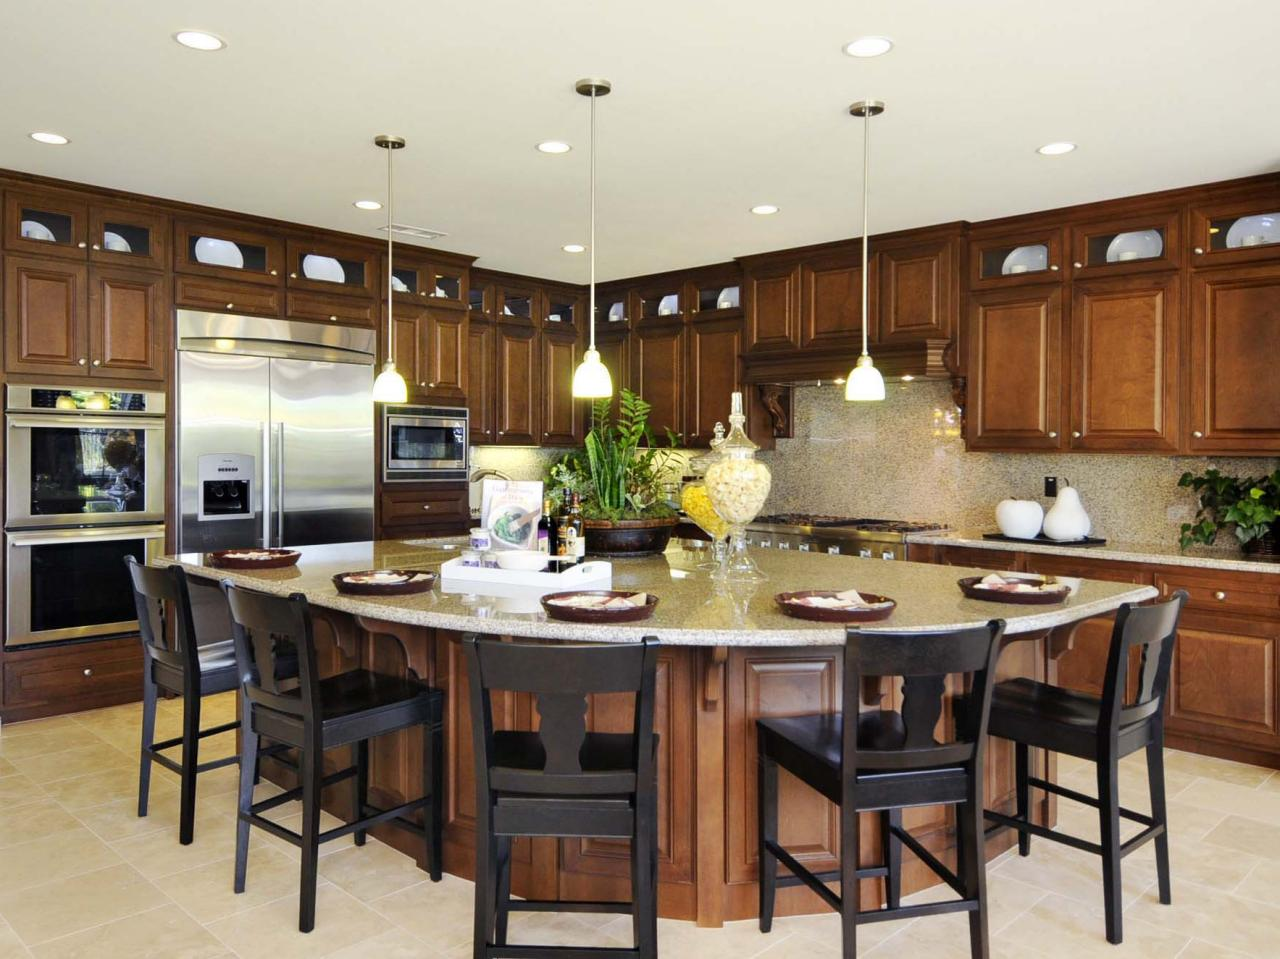 kitchen island design ideas DPTXPWY